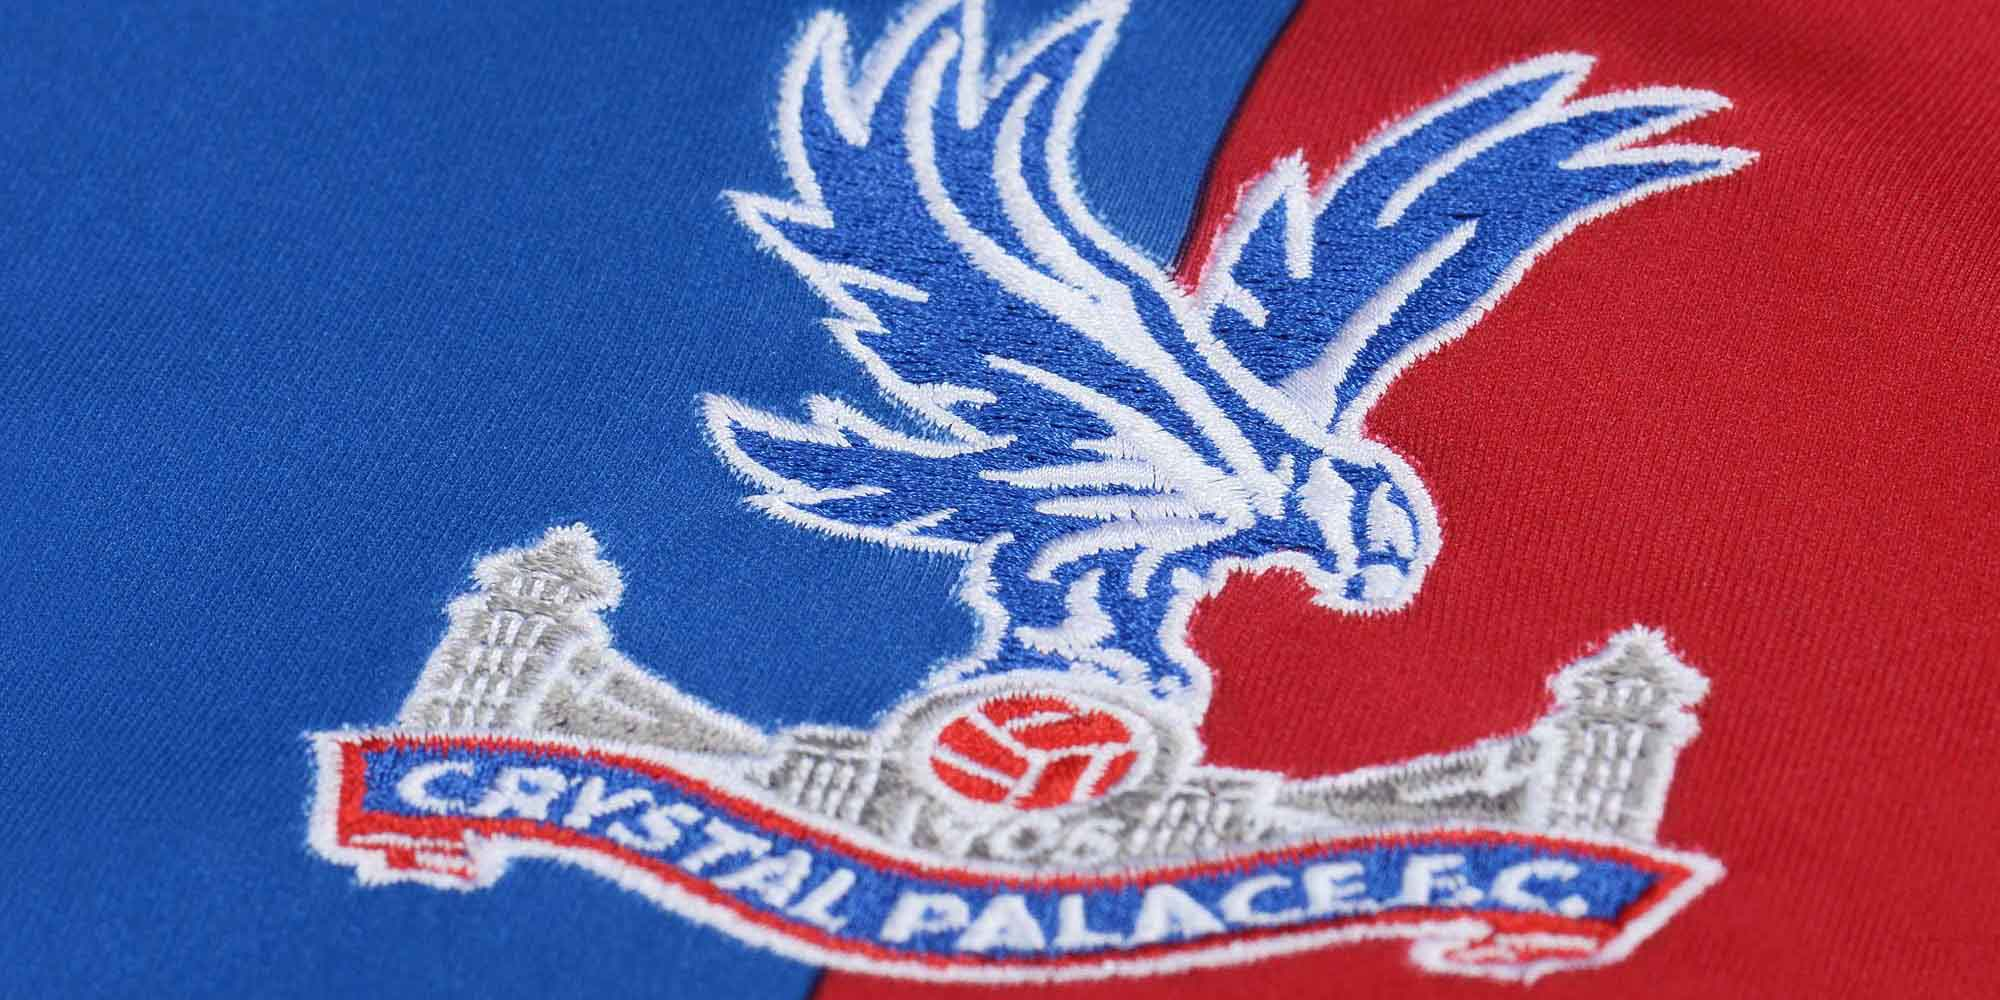 The new Macron Crystal Palace 15-16 Kits introduce a unique design for the south London English Premier League club featuring the iconic stripes.